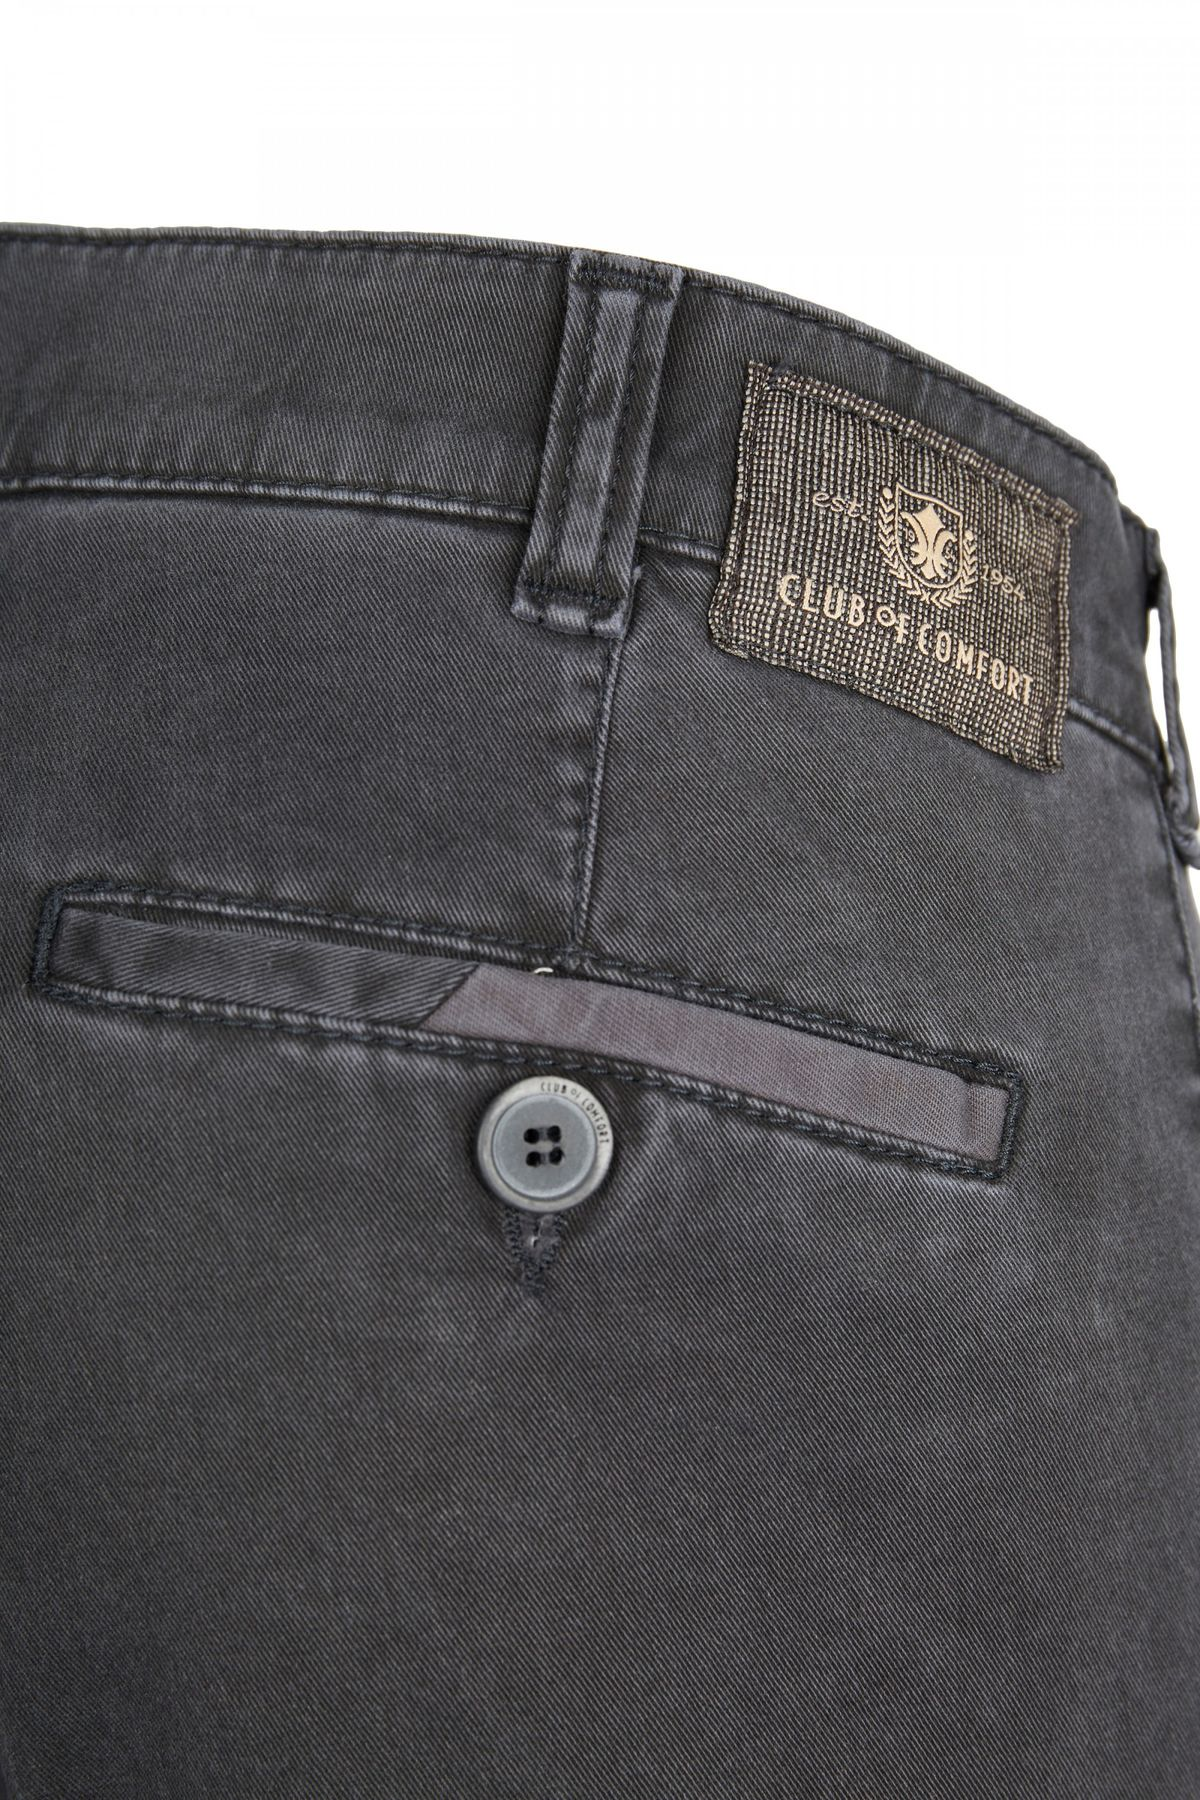 Club of Comfort - Herren Five Pocket Hose, Keno (6421) – Bild 4